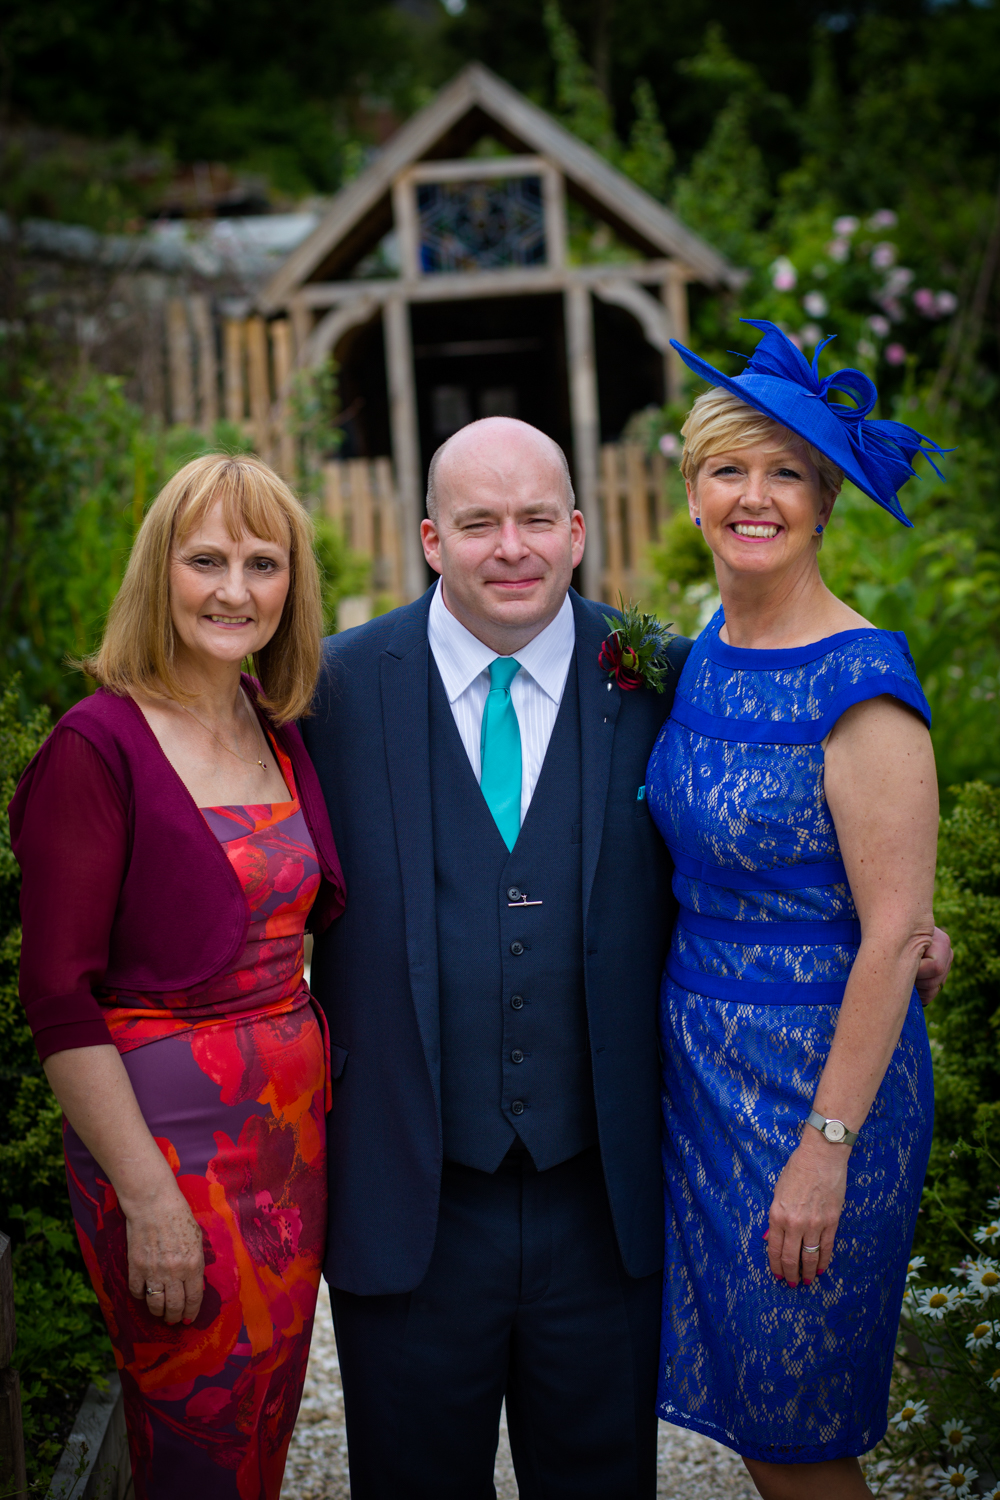 Clare and Charles wedding day blog-62.jpg